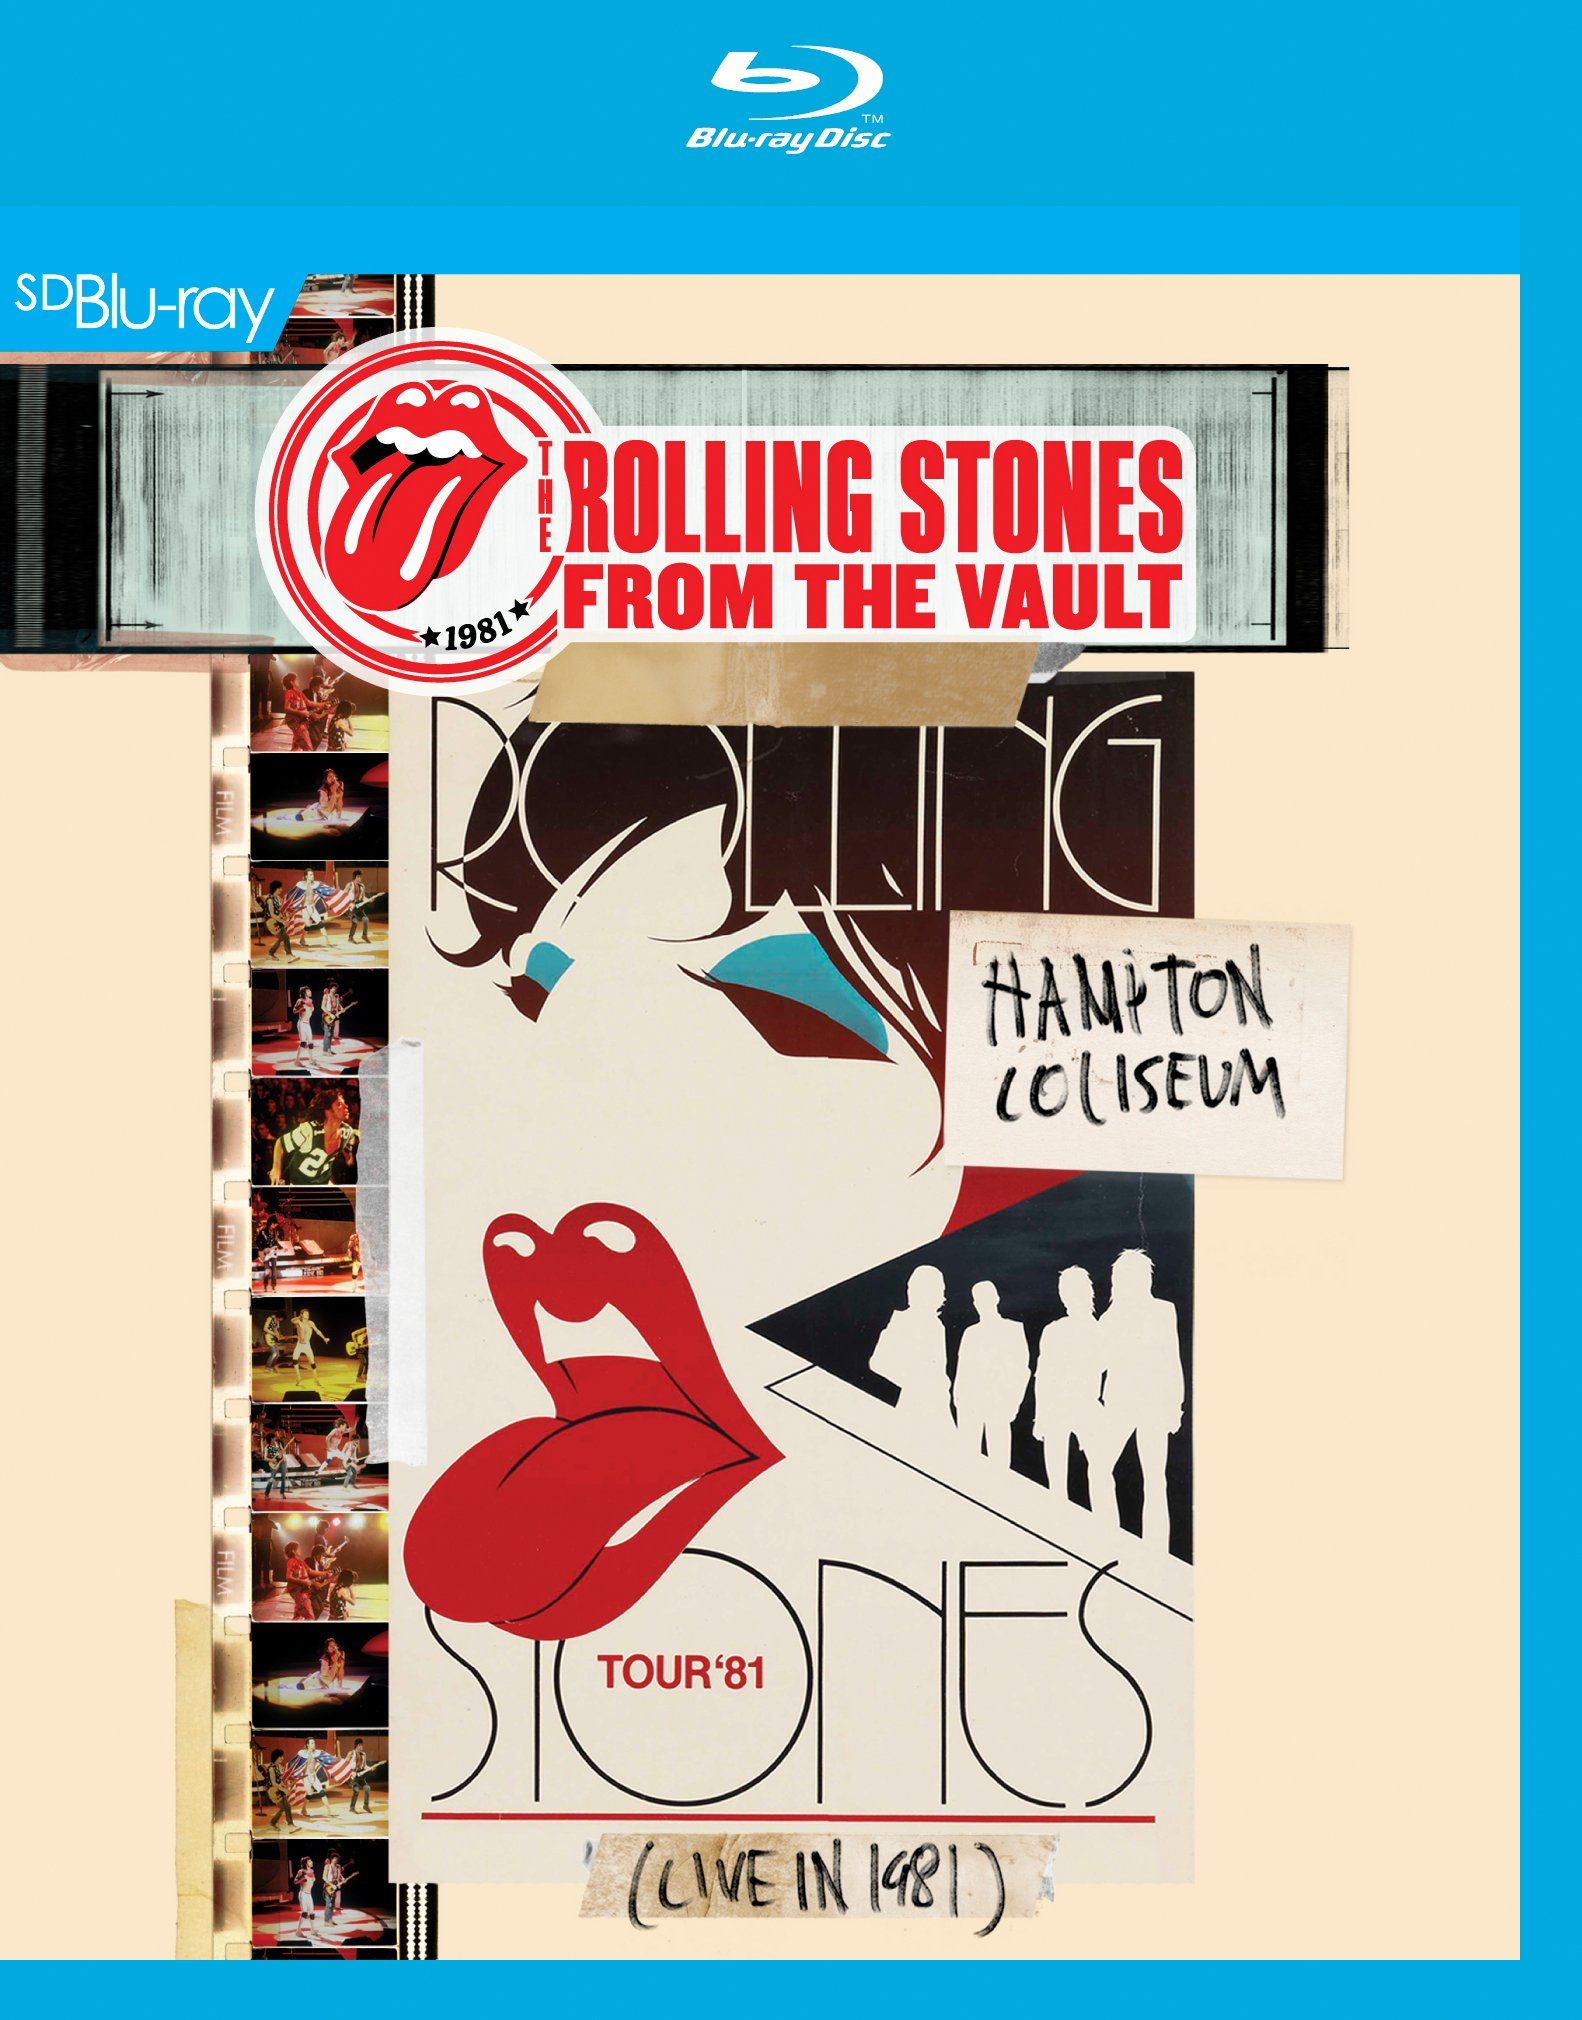 Blu-ray : The Rolling Stones - From the Vault: Hampton Coliseum (Live in 1981) (Blu-ray)